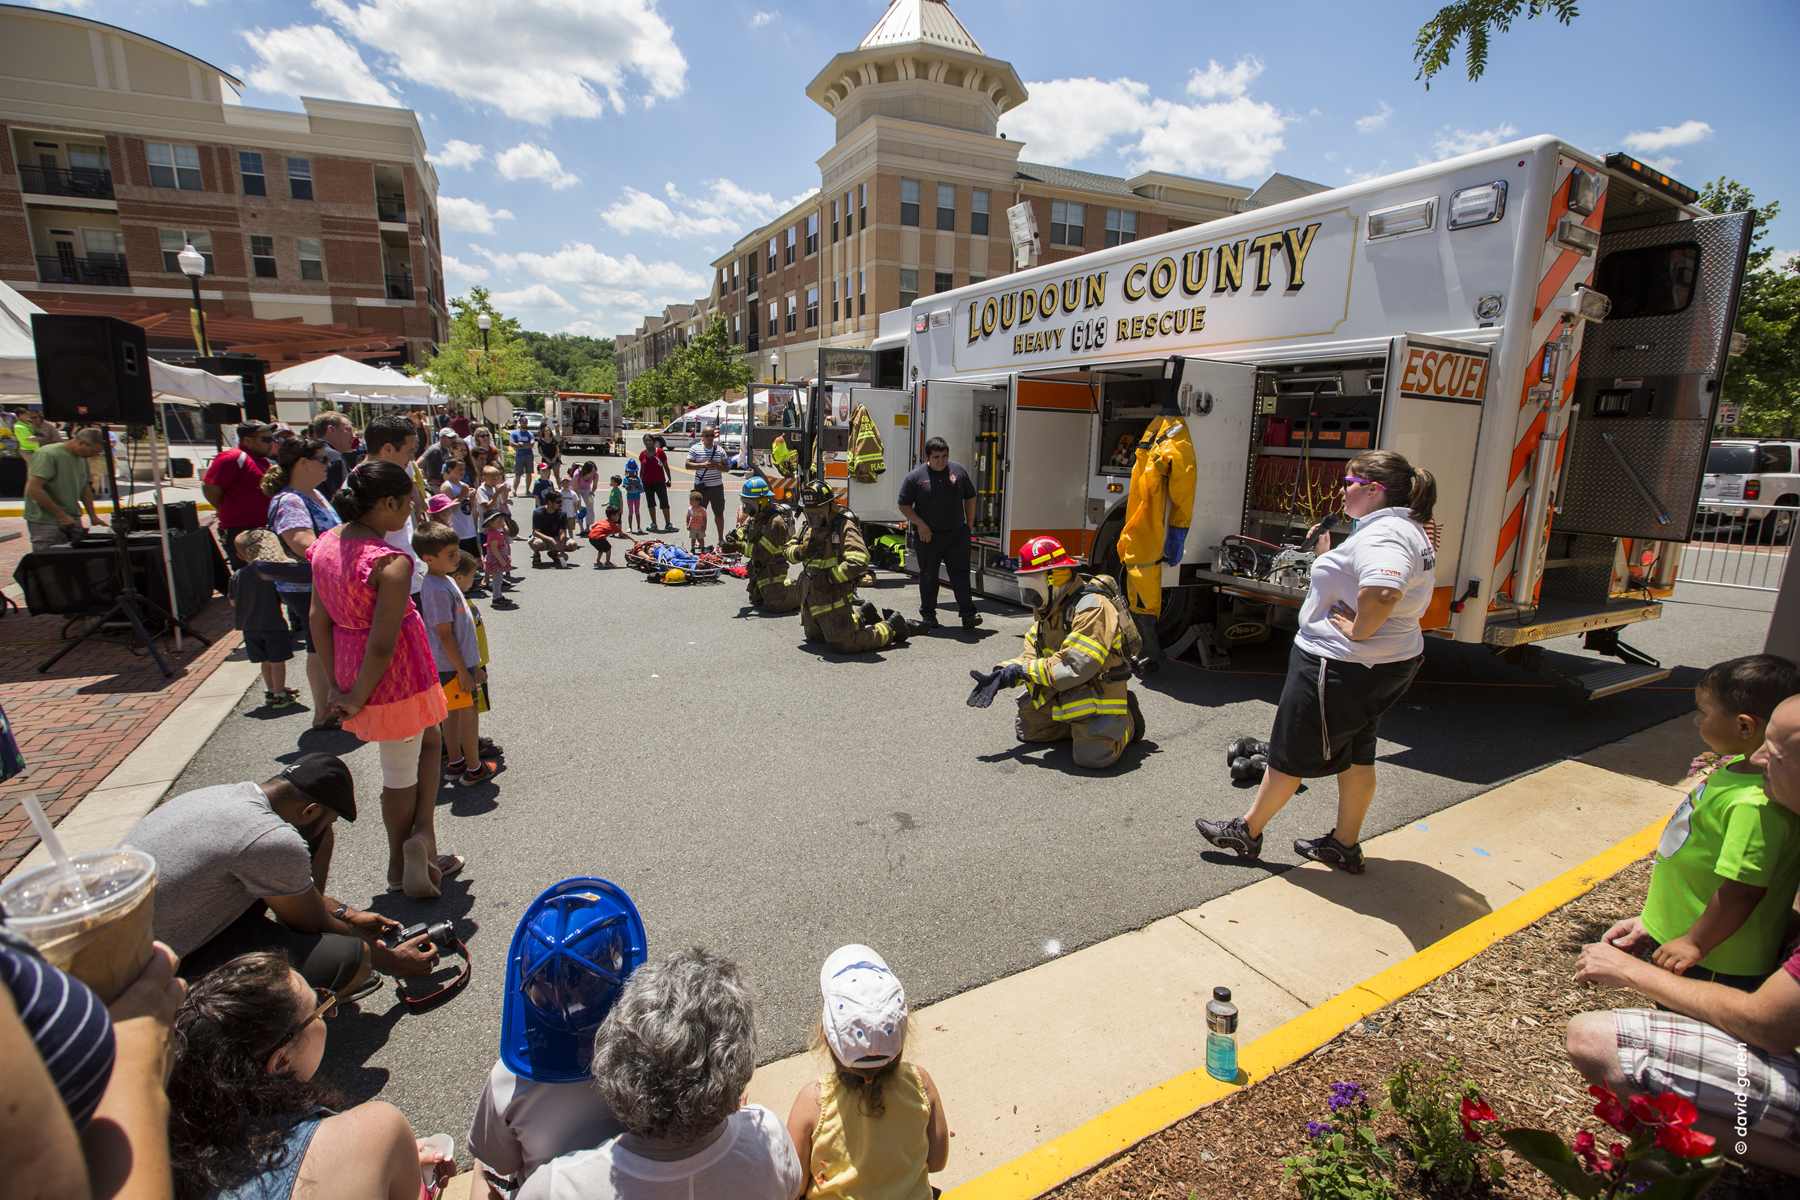 Public Safety Day The Loudoun County Volunteer Rescue Squad